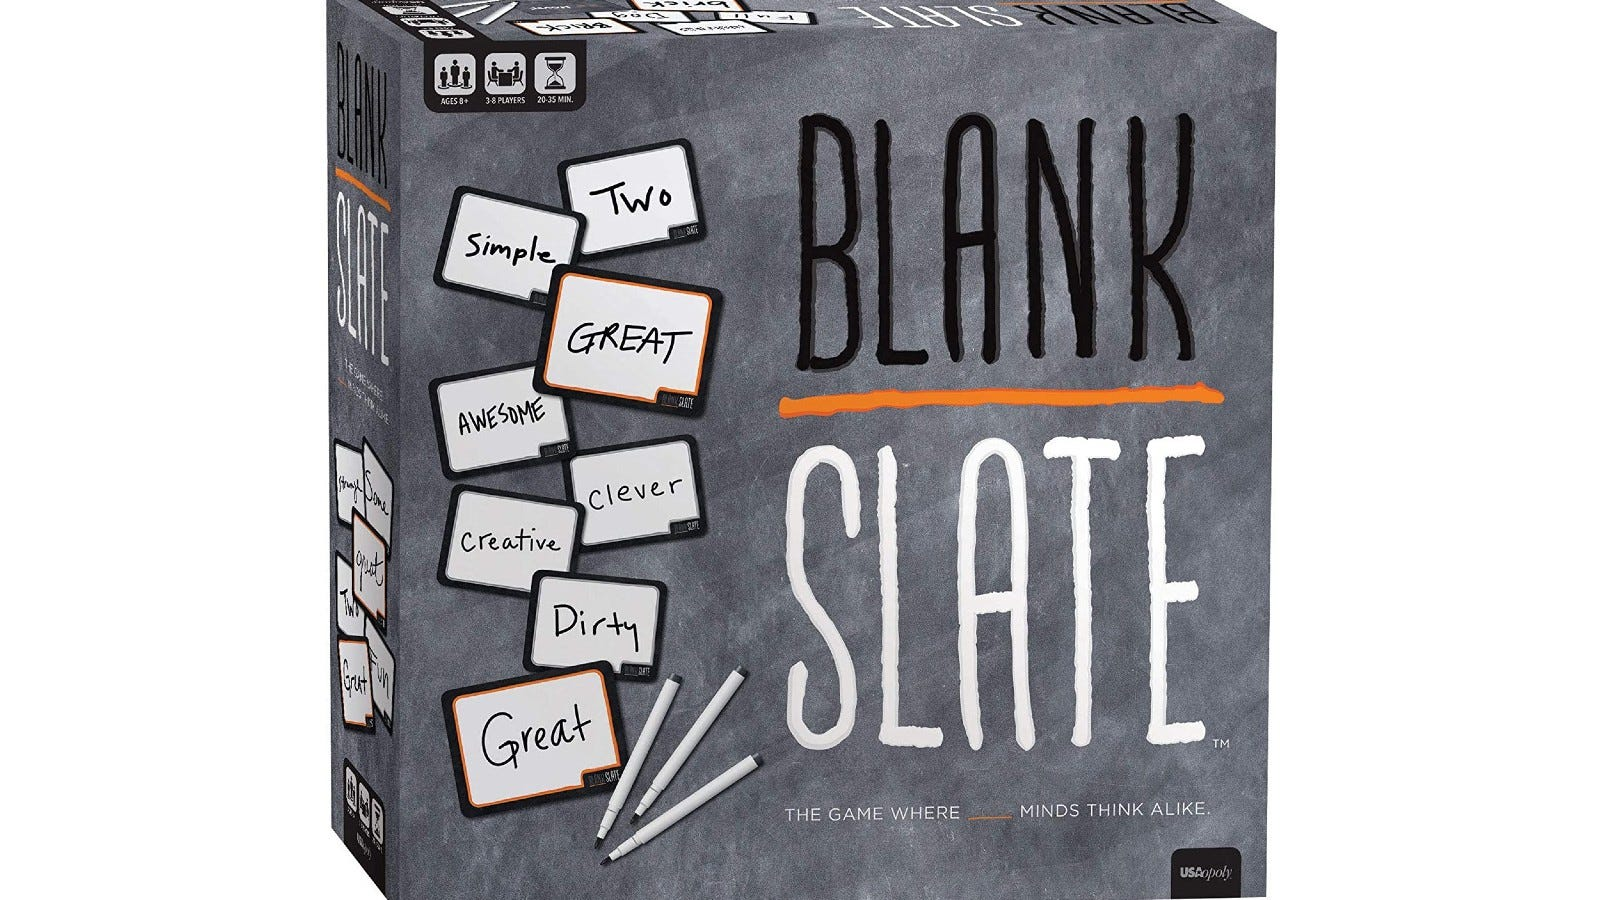 The Blank Slate game box.